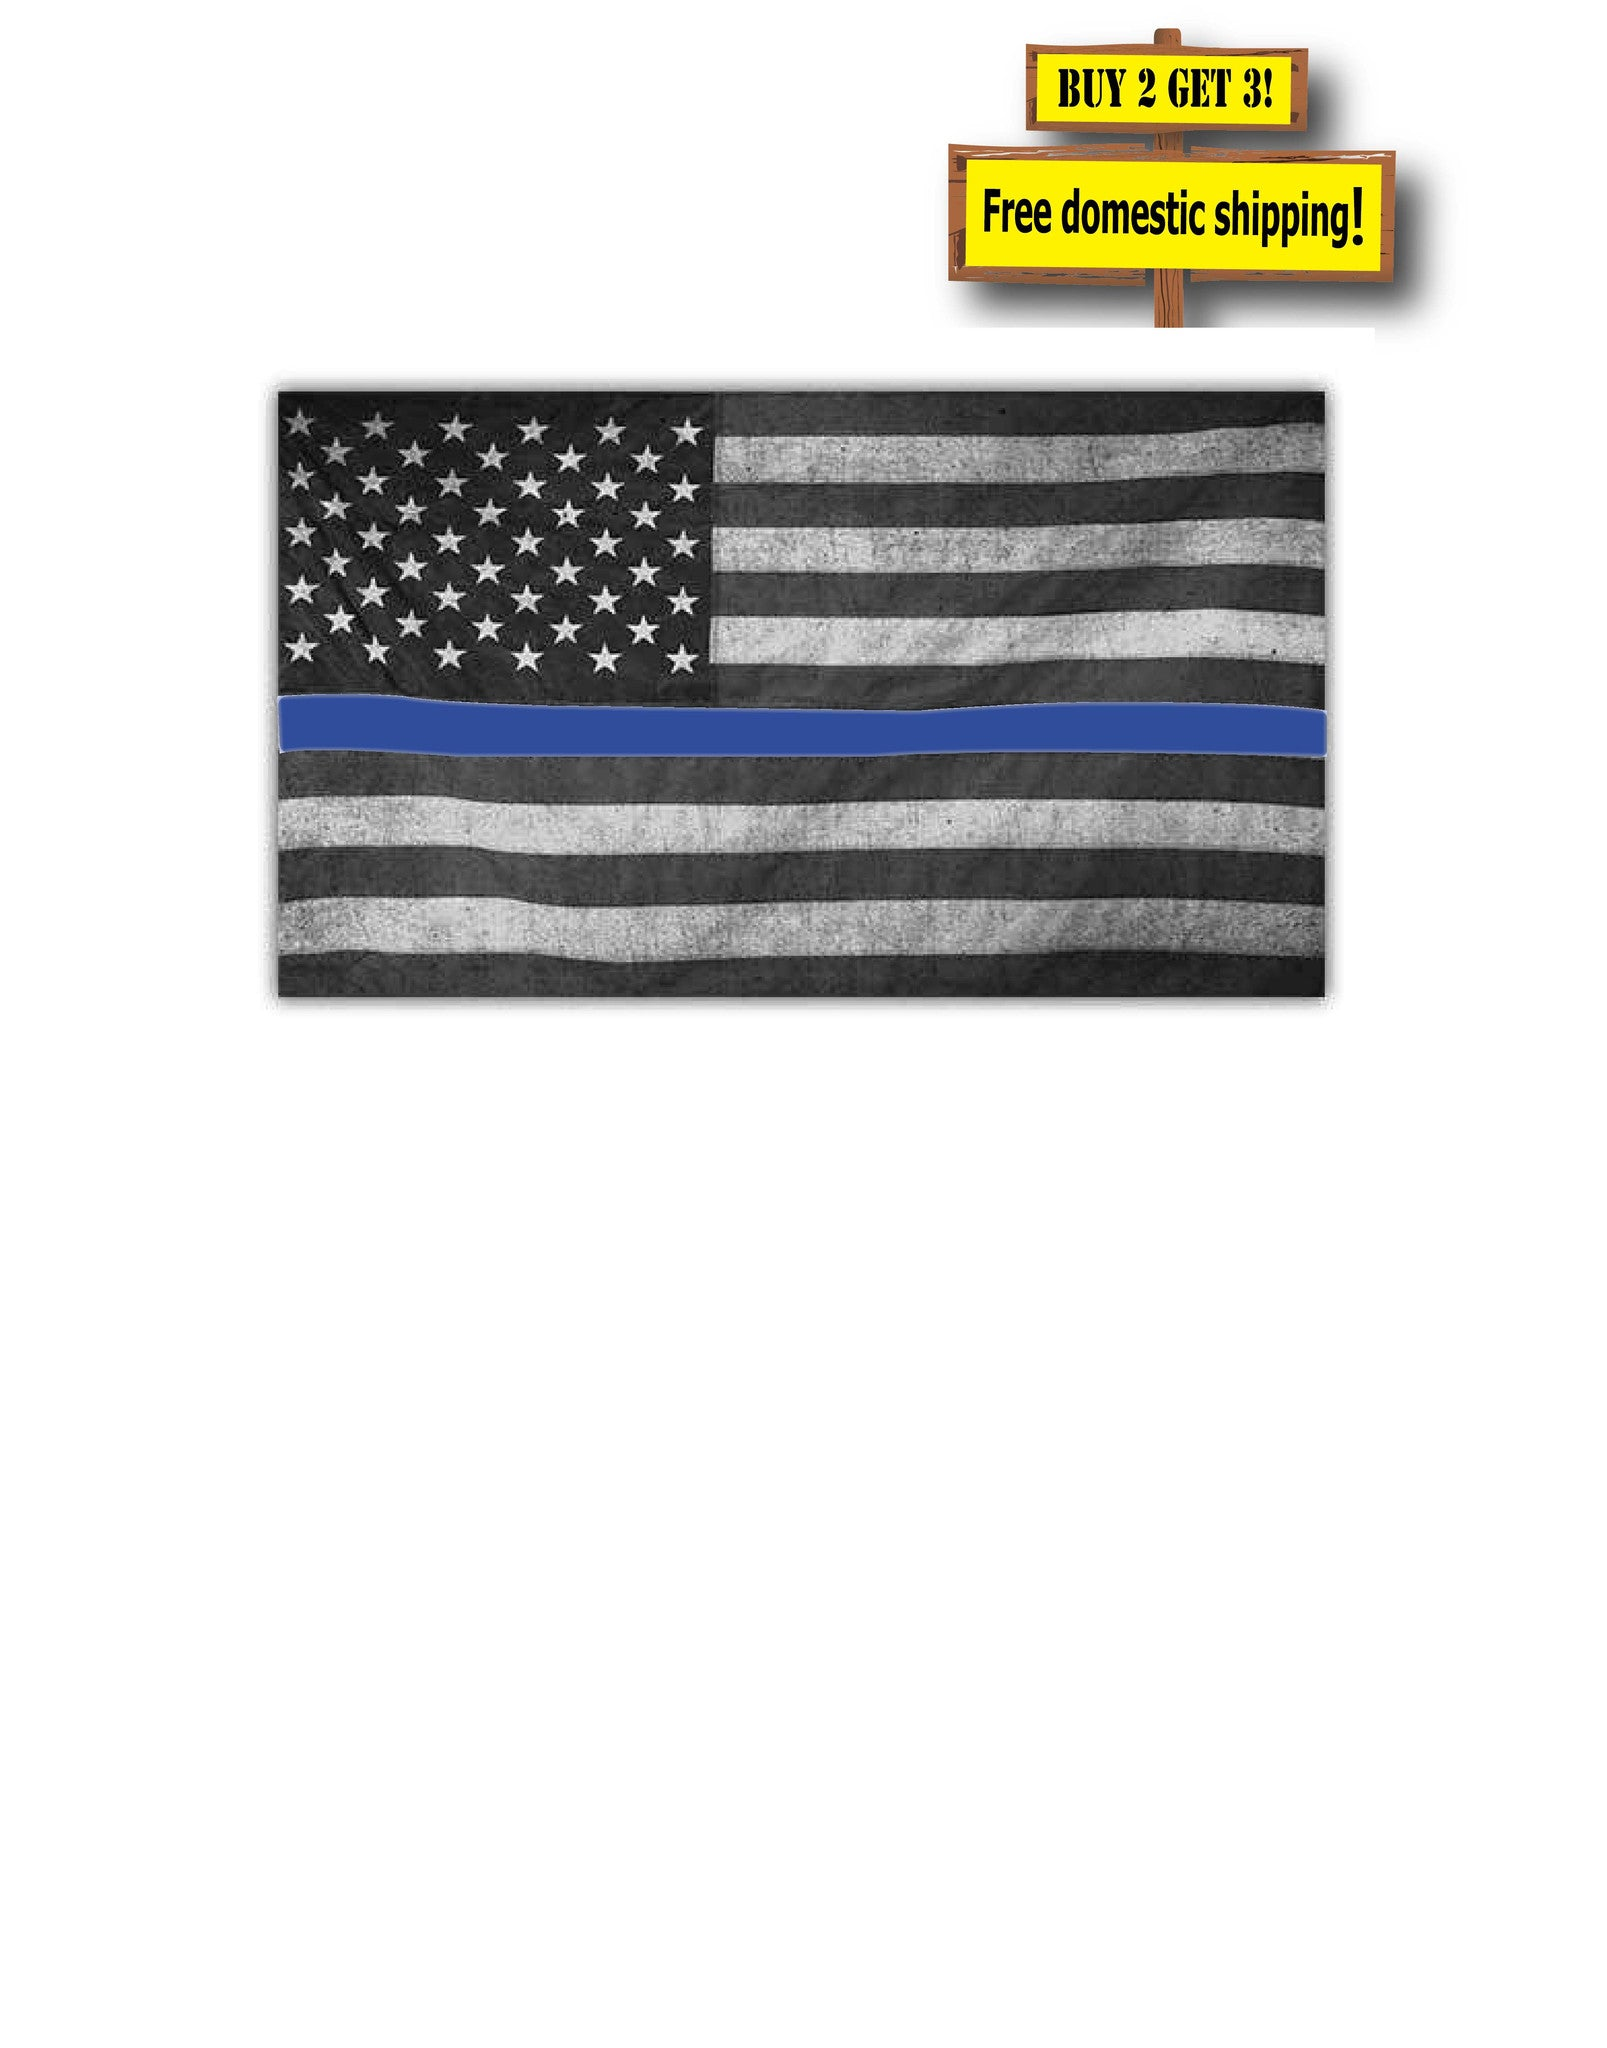 9262ec33dc8 Pair of (2) Thin Blue Line Distressed Subdued Flags Decals stickers ...